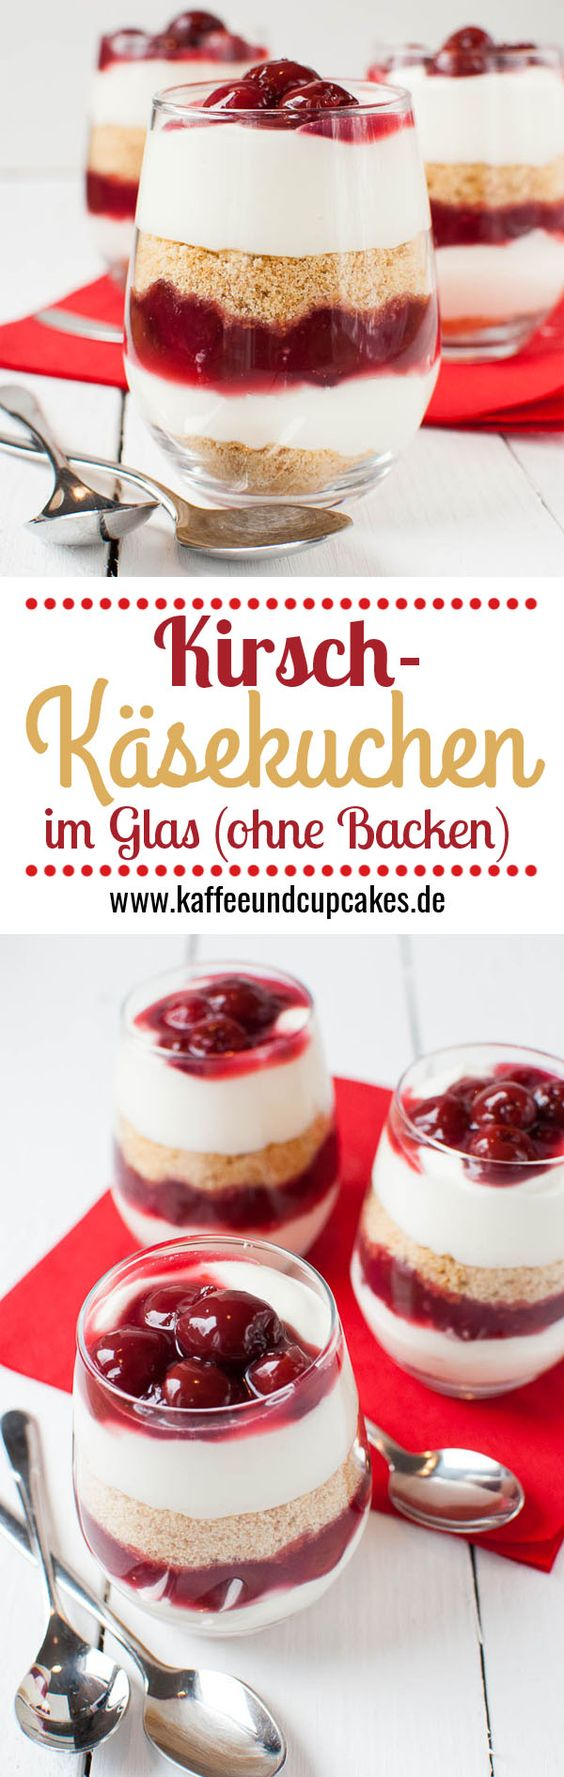 kirsch k sekuchen dessert im glas ohne backen rezept. Black Bedroom Furniture Sets. Home Design Ideas